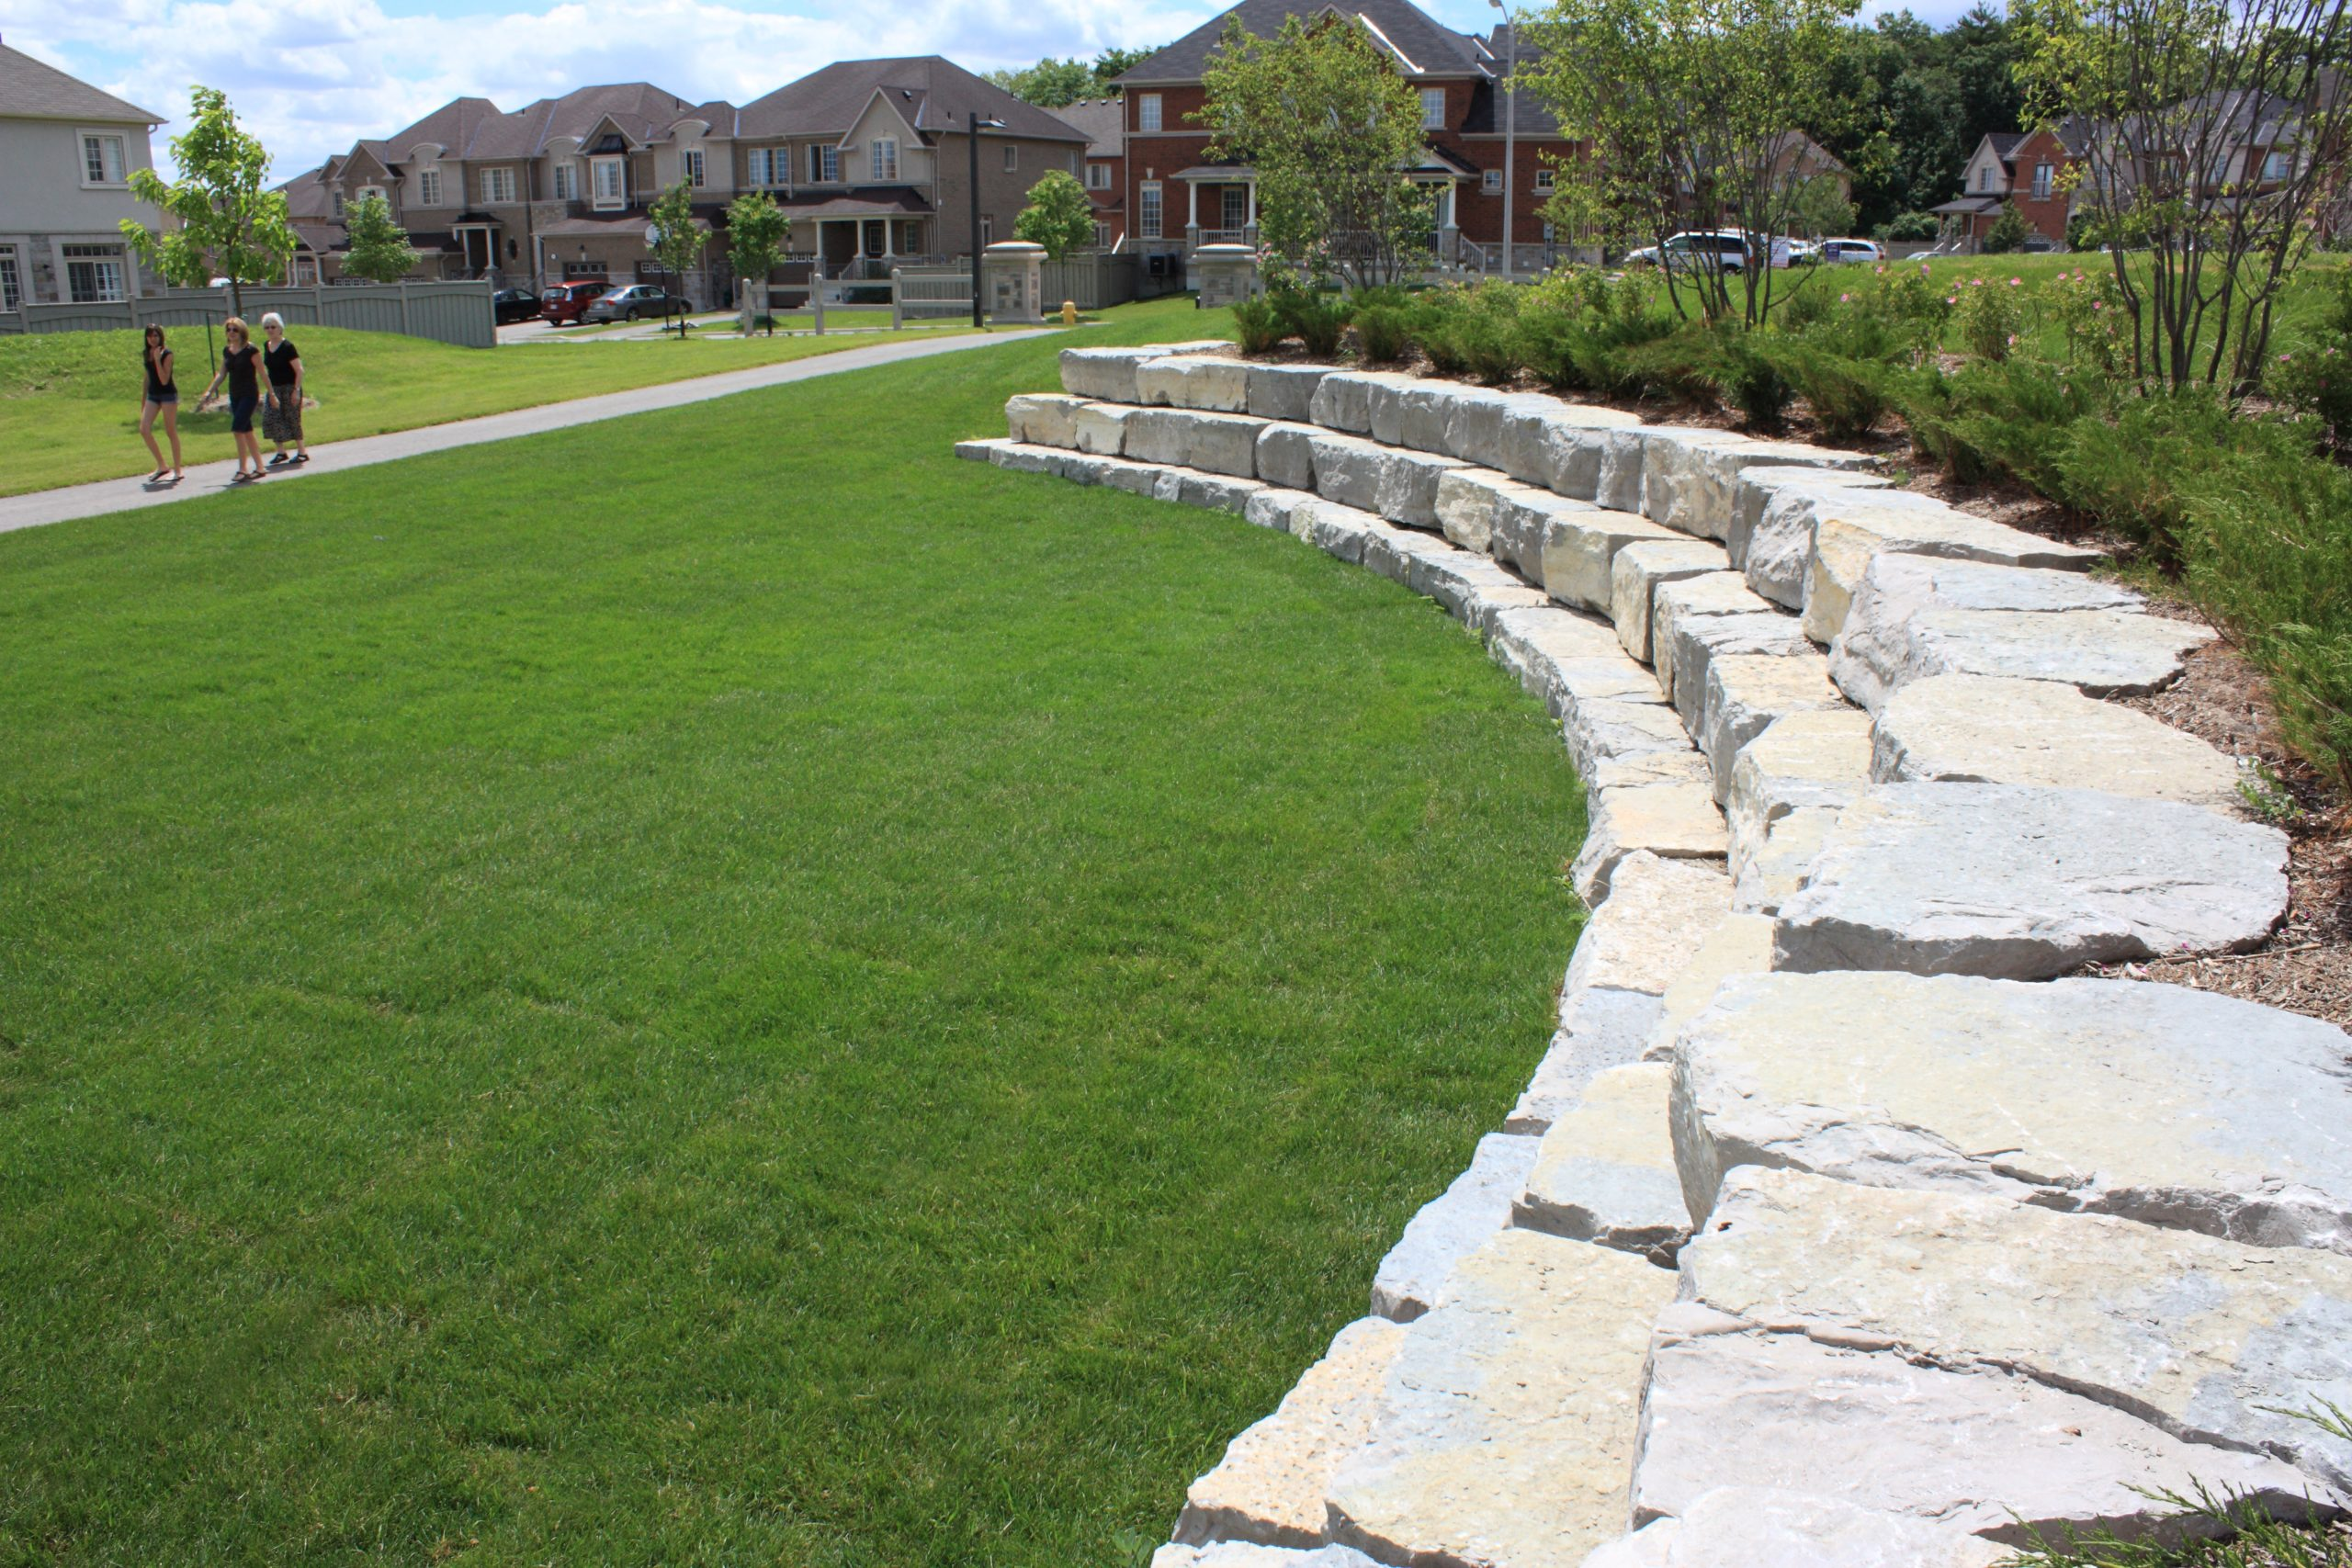 Large curved stone retainer wall.